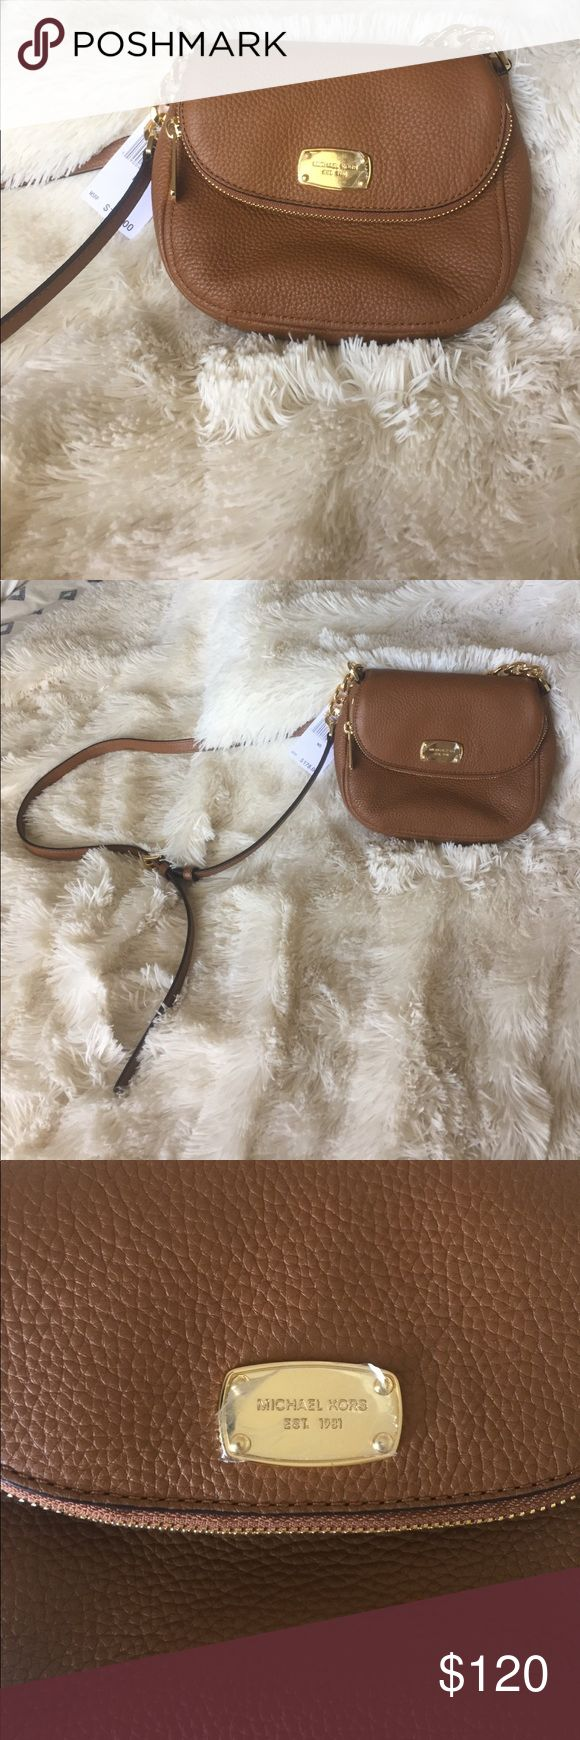 Michael Kors Bedford Flap Crossbody NWT. Never used MK Bedford leather cross body in Acorn. The bag is beautiful but I haven't used it and it deserves to be taken out on the town. Michael Kors Bags Crossbody Bags